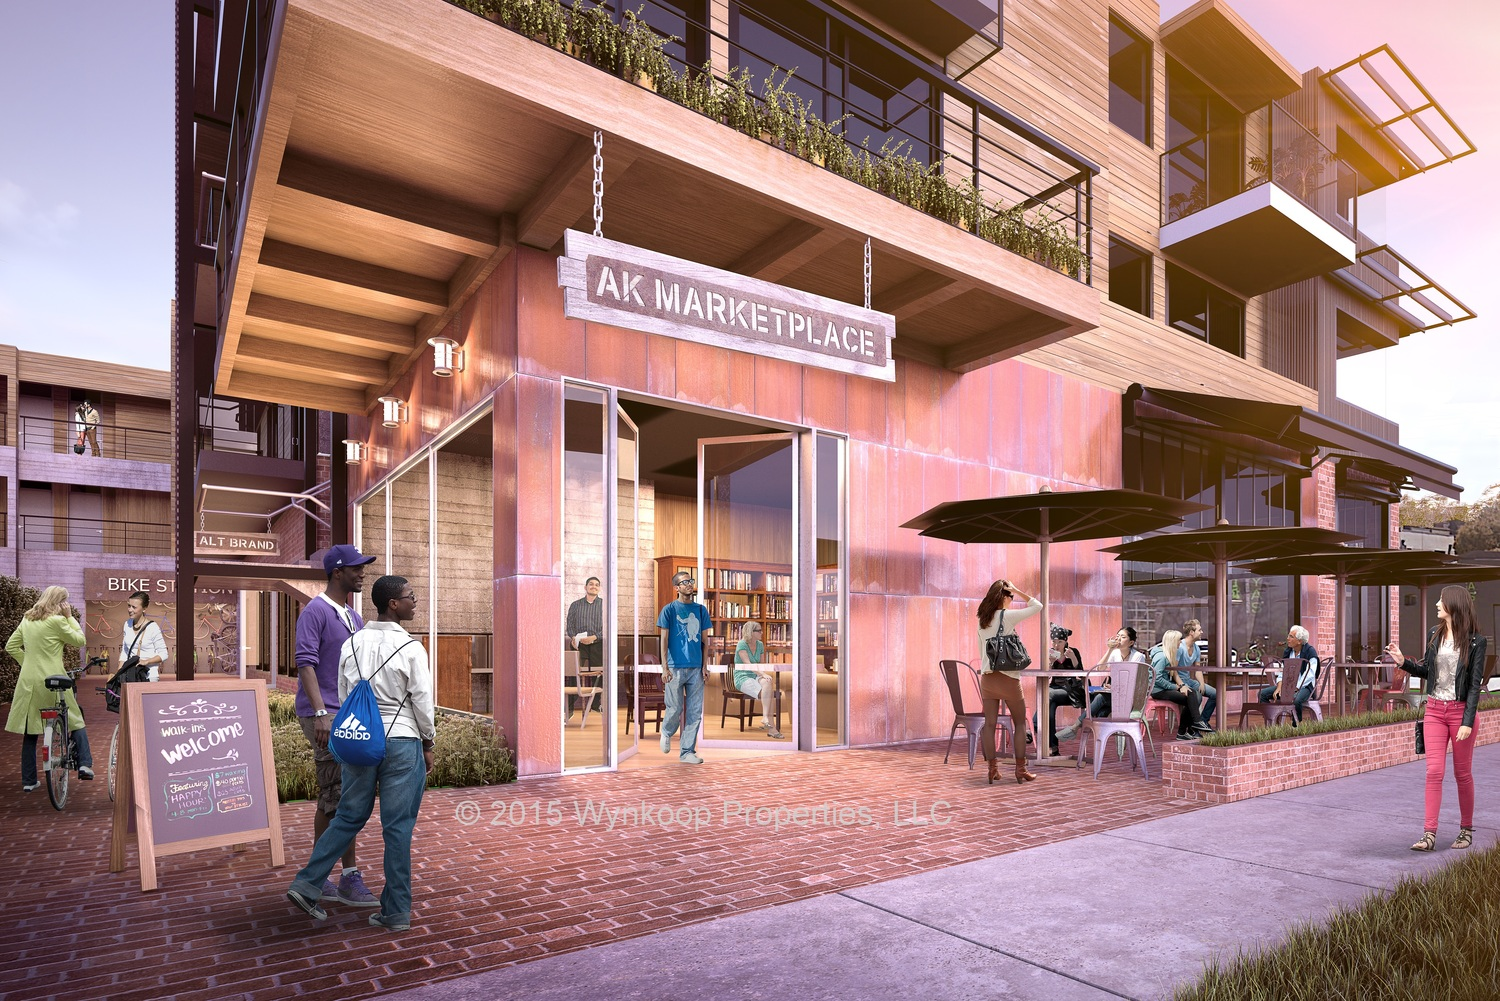 The Westminster building at the southern corner of Abbot Kinney and Westminster Ave. The ground floor would be a mix of retail, a general store or marketplace with asmall cafe and office space. Hotel rooms occupy the second and third floors.